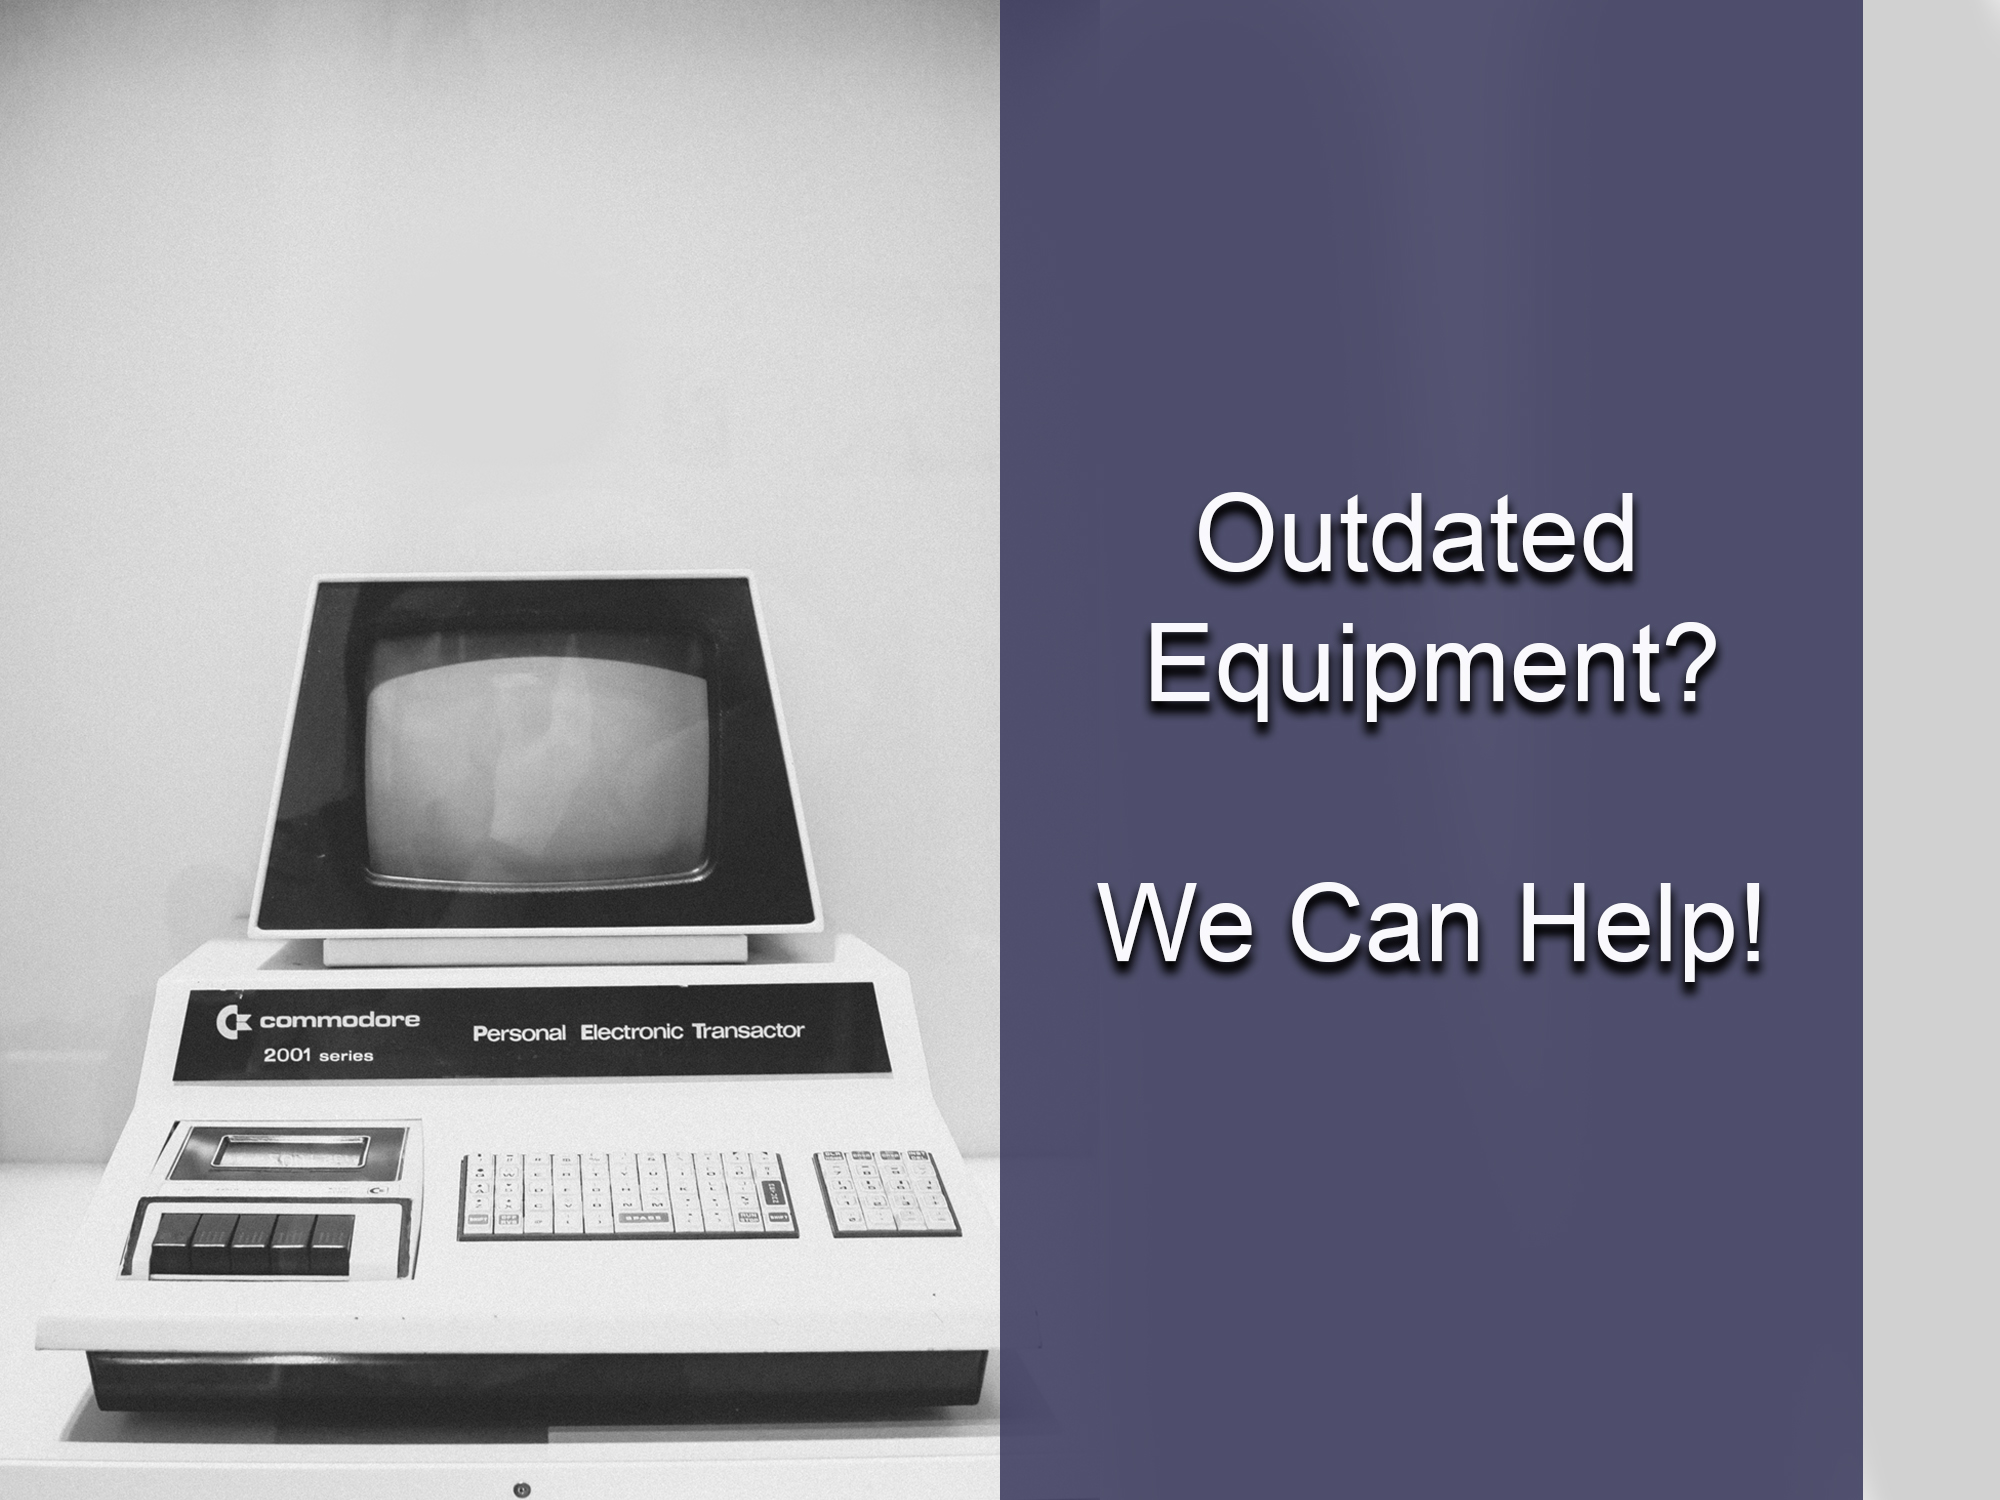 Old Equipment? We can Help!